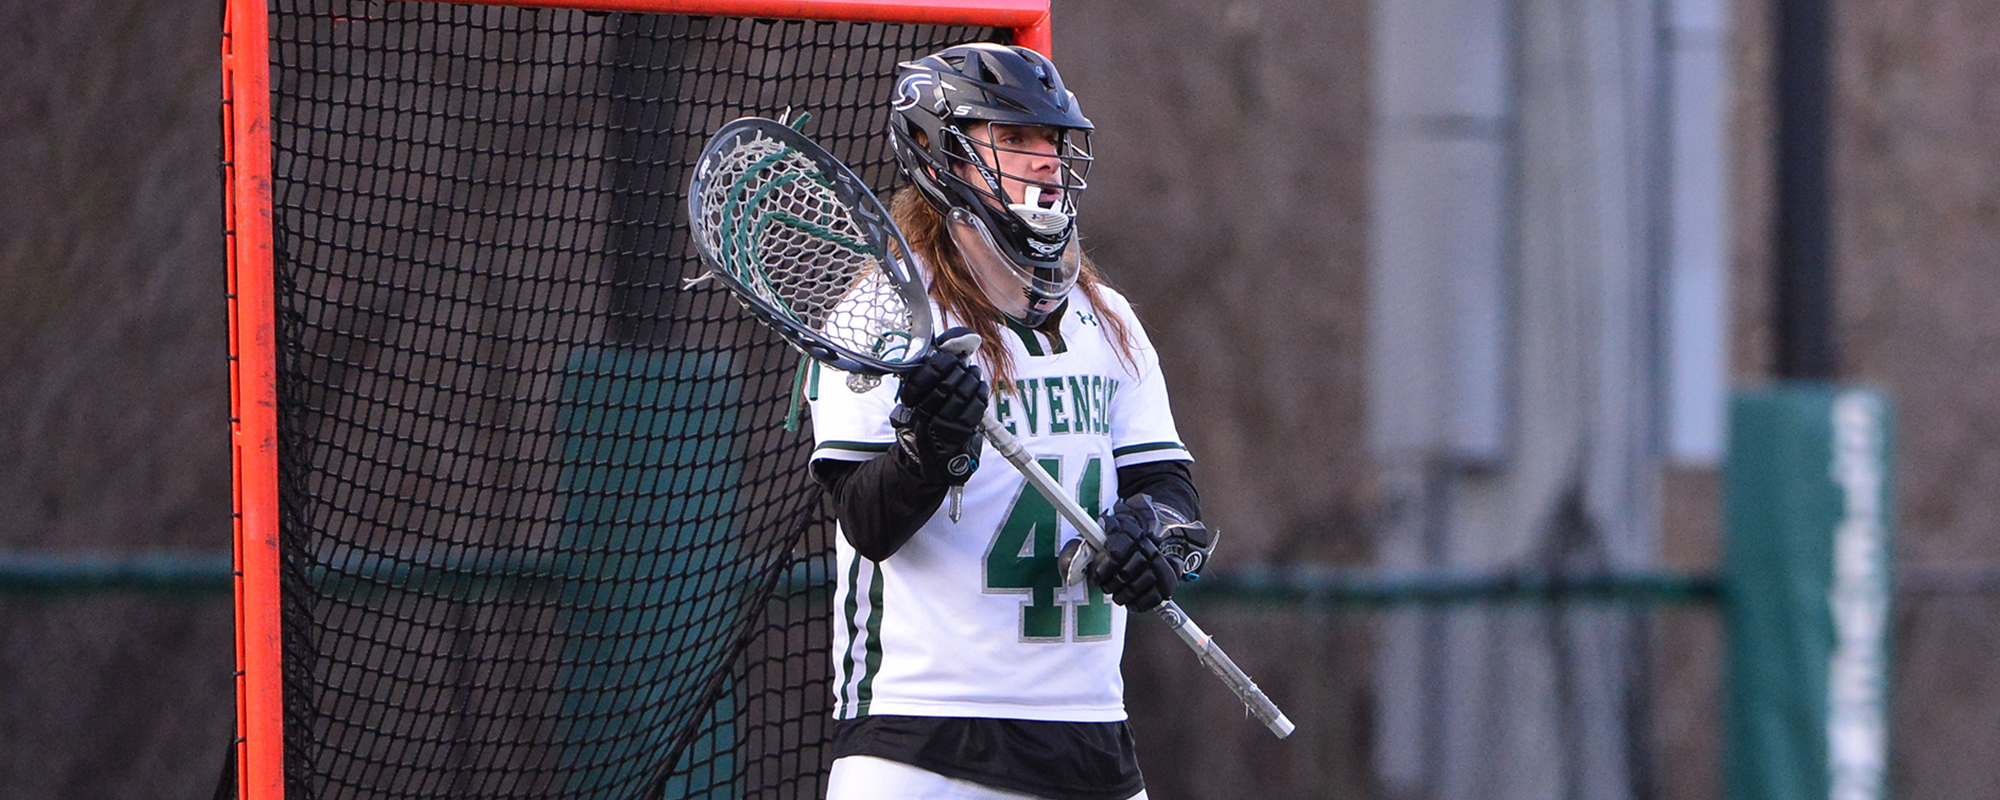 Poust Makes 17 Saves, Mustang Win Streak Stopped by No. 7 Cabrini